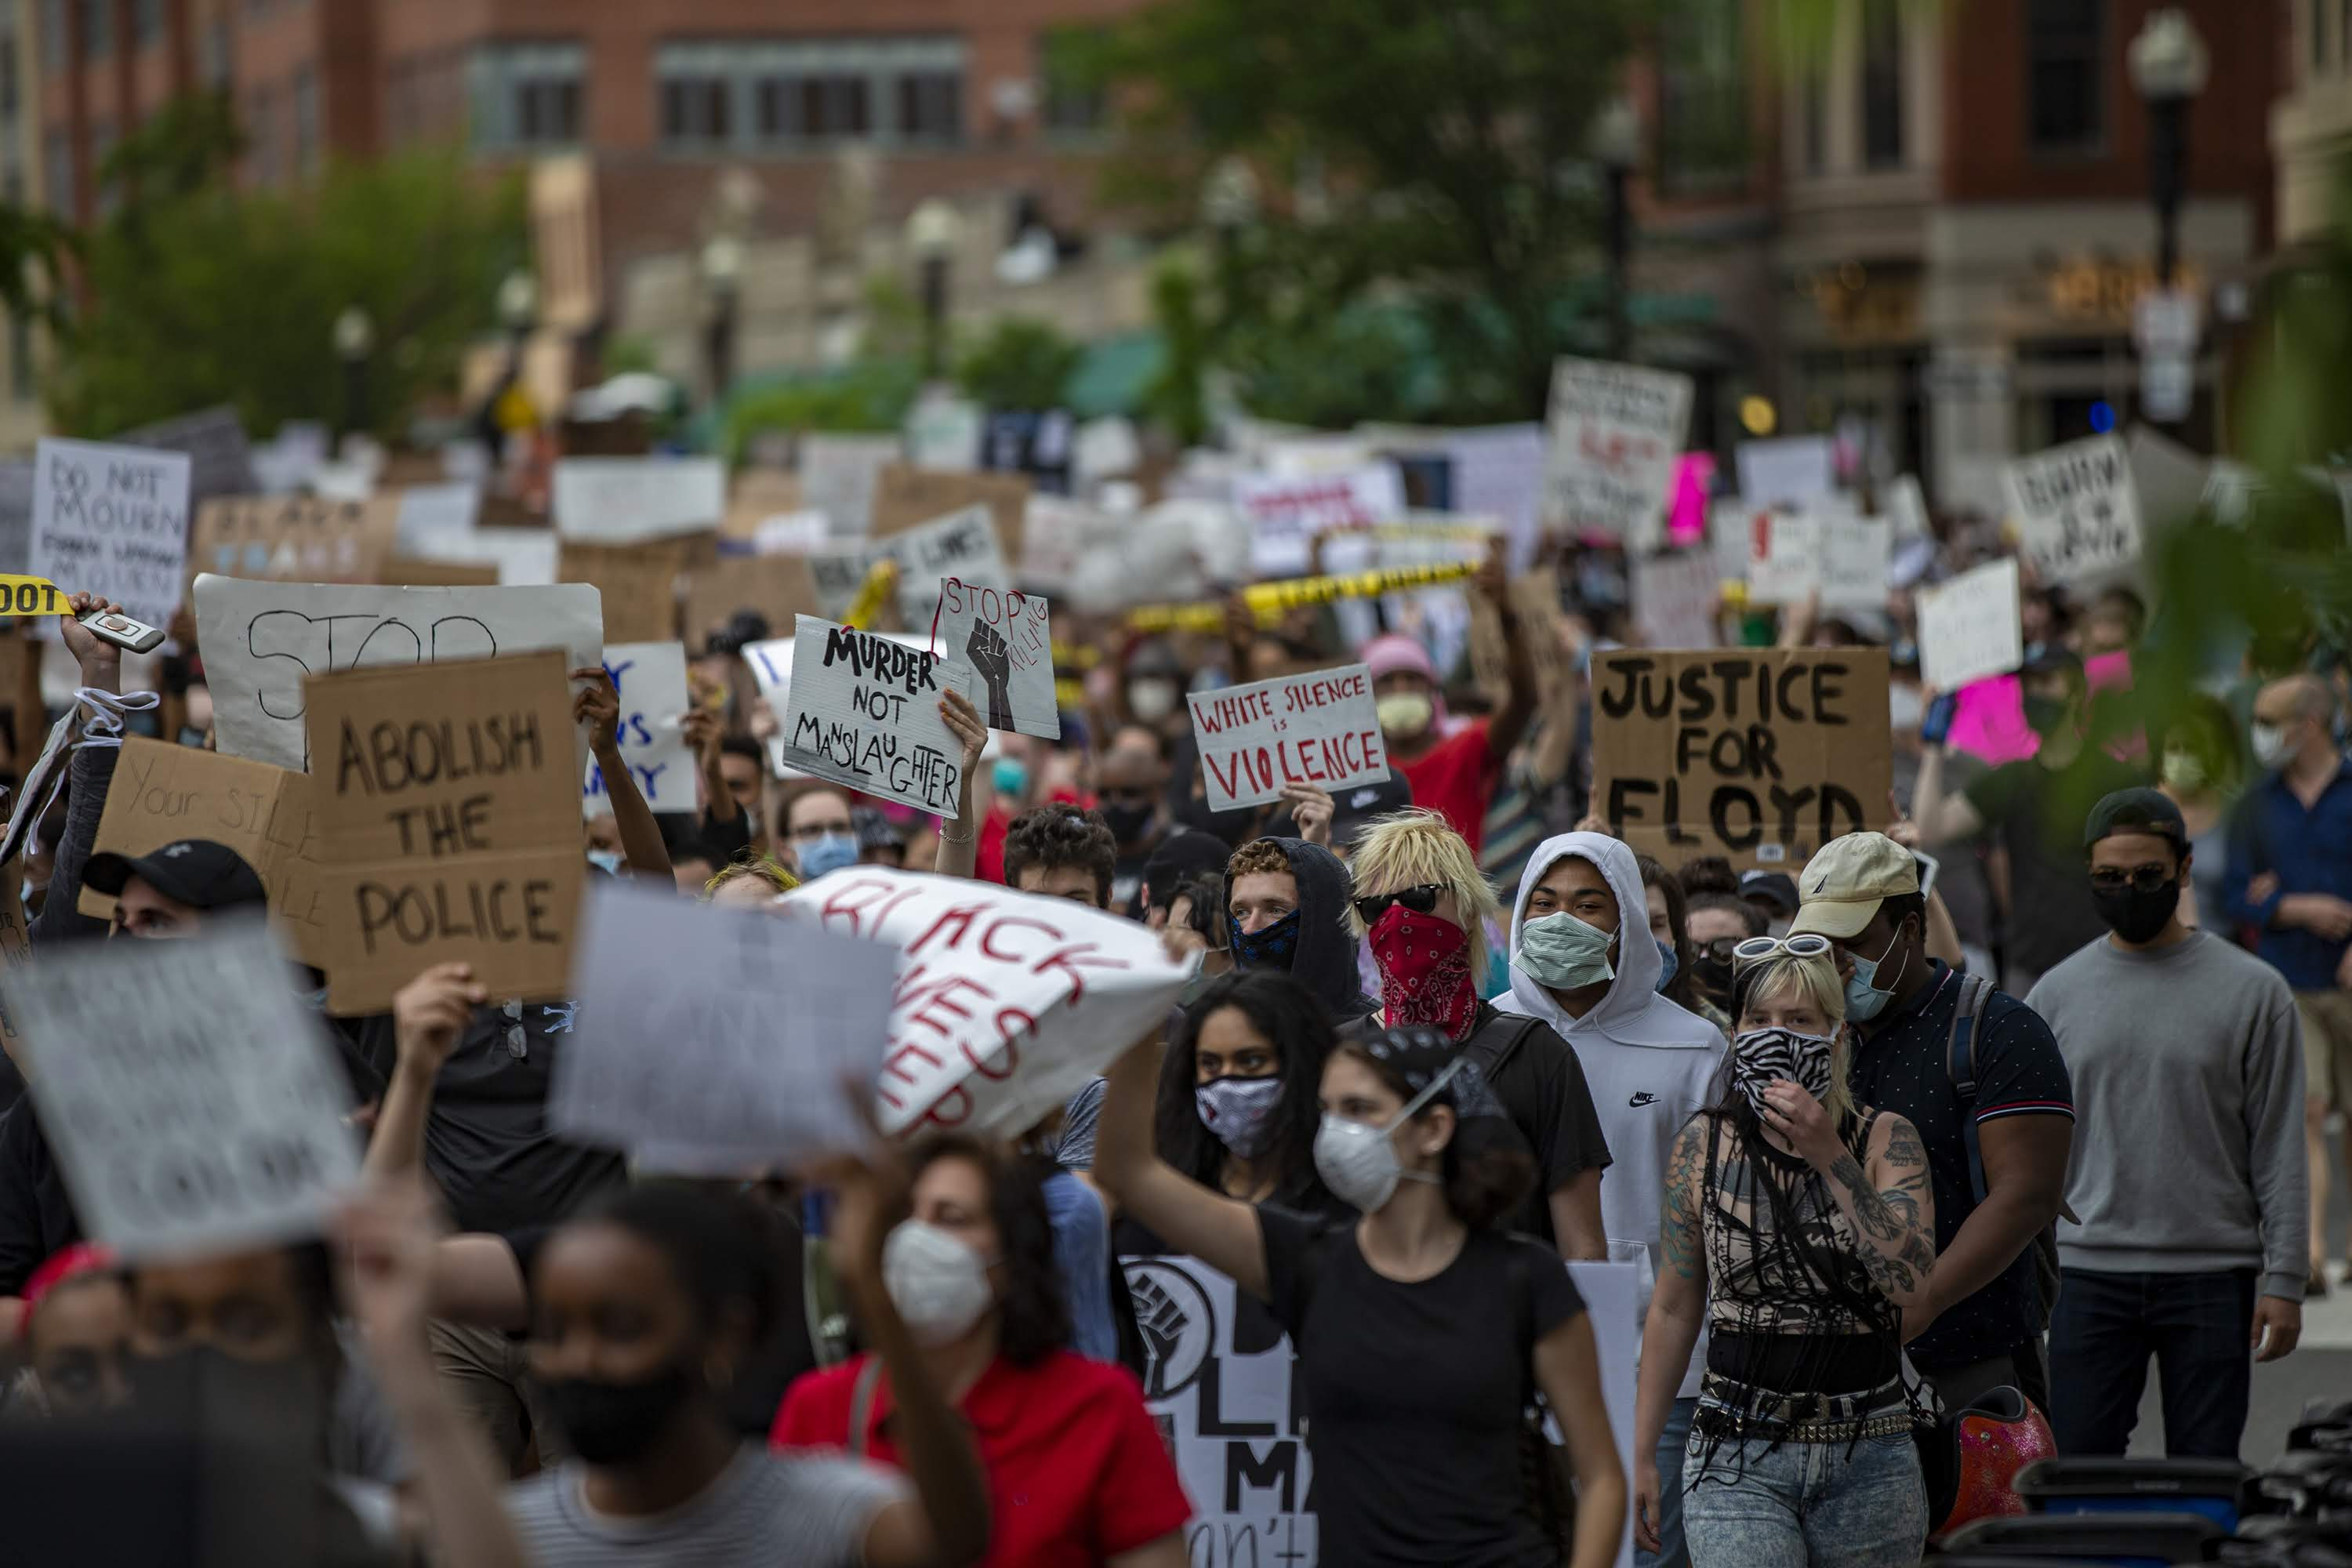 About a thousand protesters march down Washington Street in Boston in outrage over the killing of George Floyd, joining other protests nationwide. (Jesse Costa/WBUR